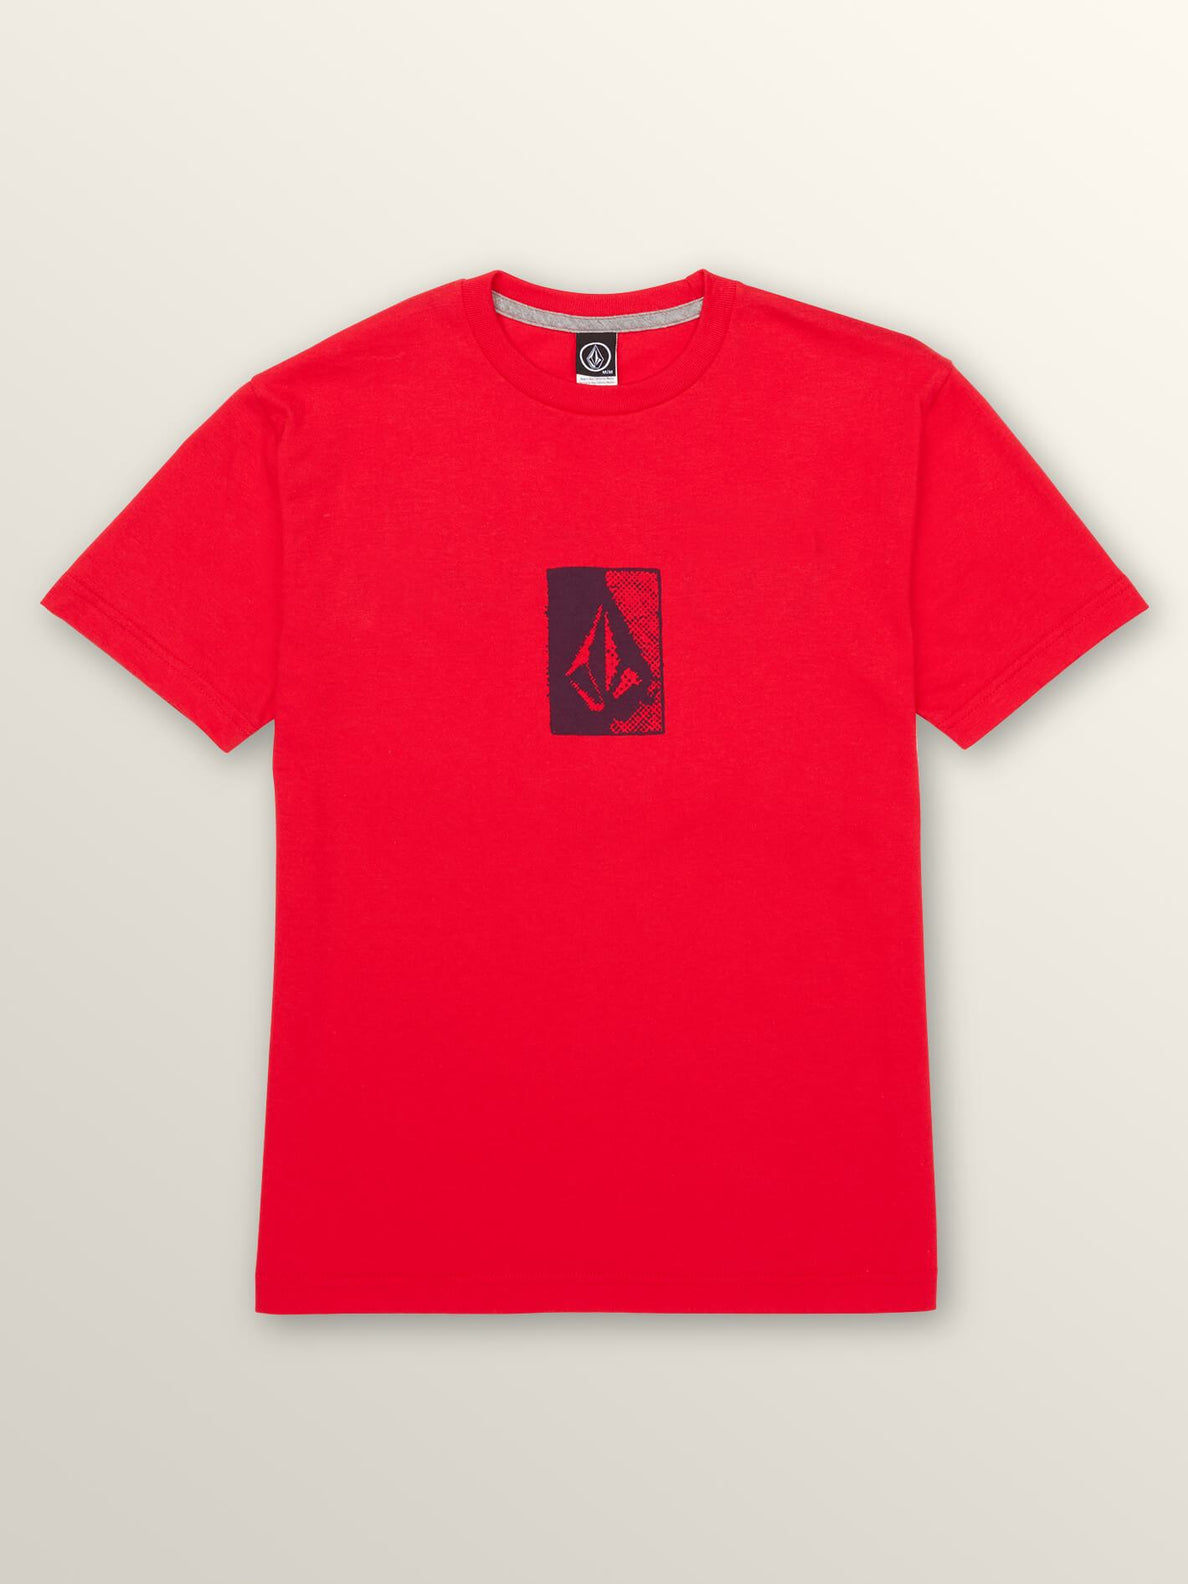 Big Boys Half Tone Short Sleeve Tee In True Red, Front View